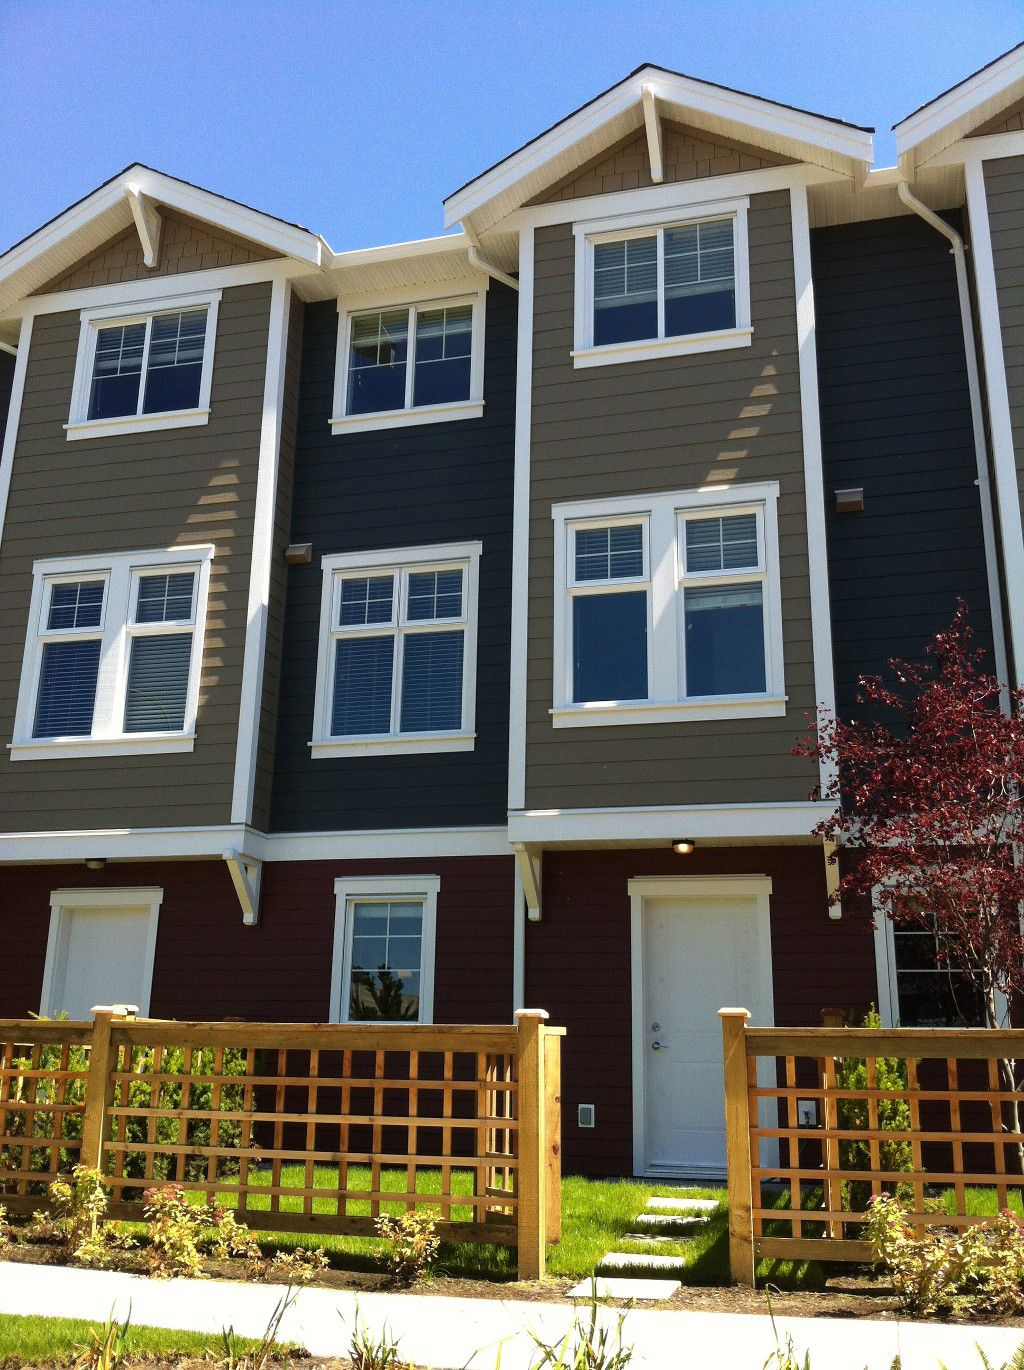 Main Photo: #28 1111 Ewen Ave in New Westminster: Queensborough Townhouse for sale : MLS®# V1009565